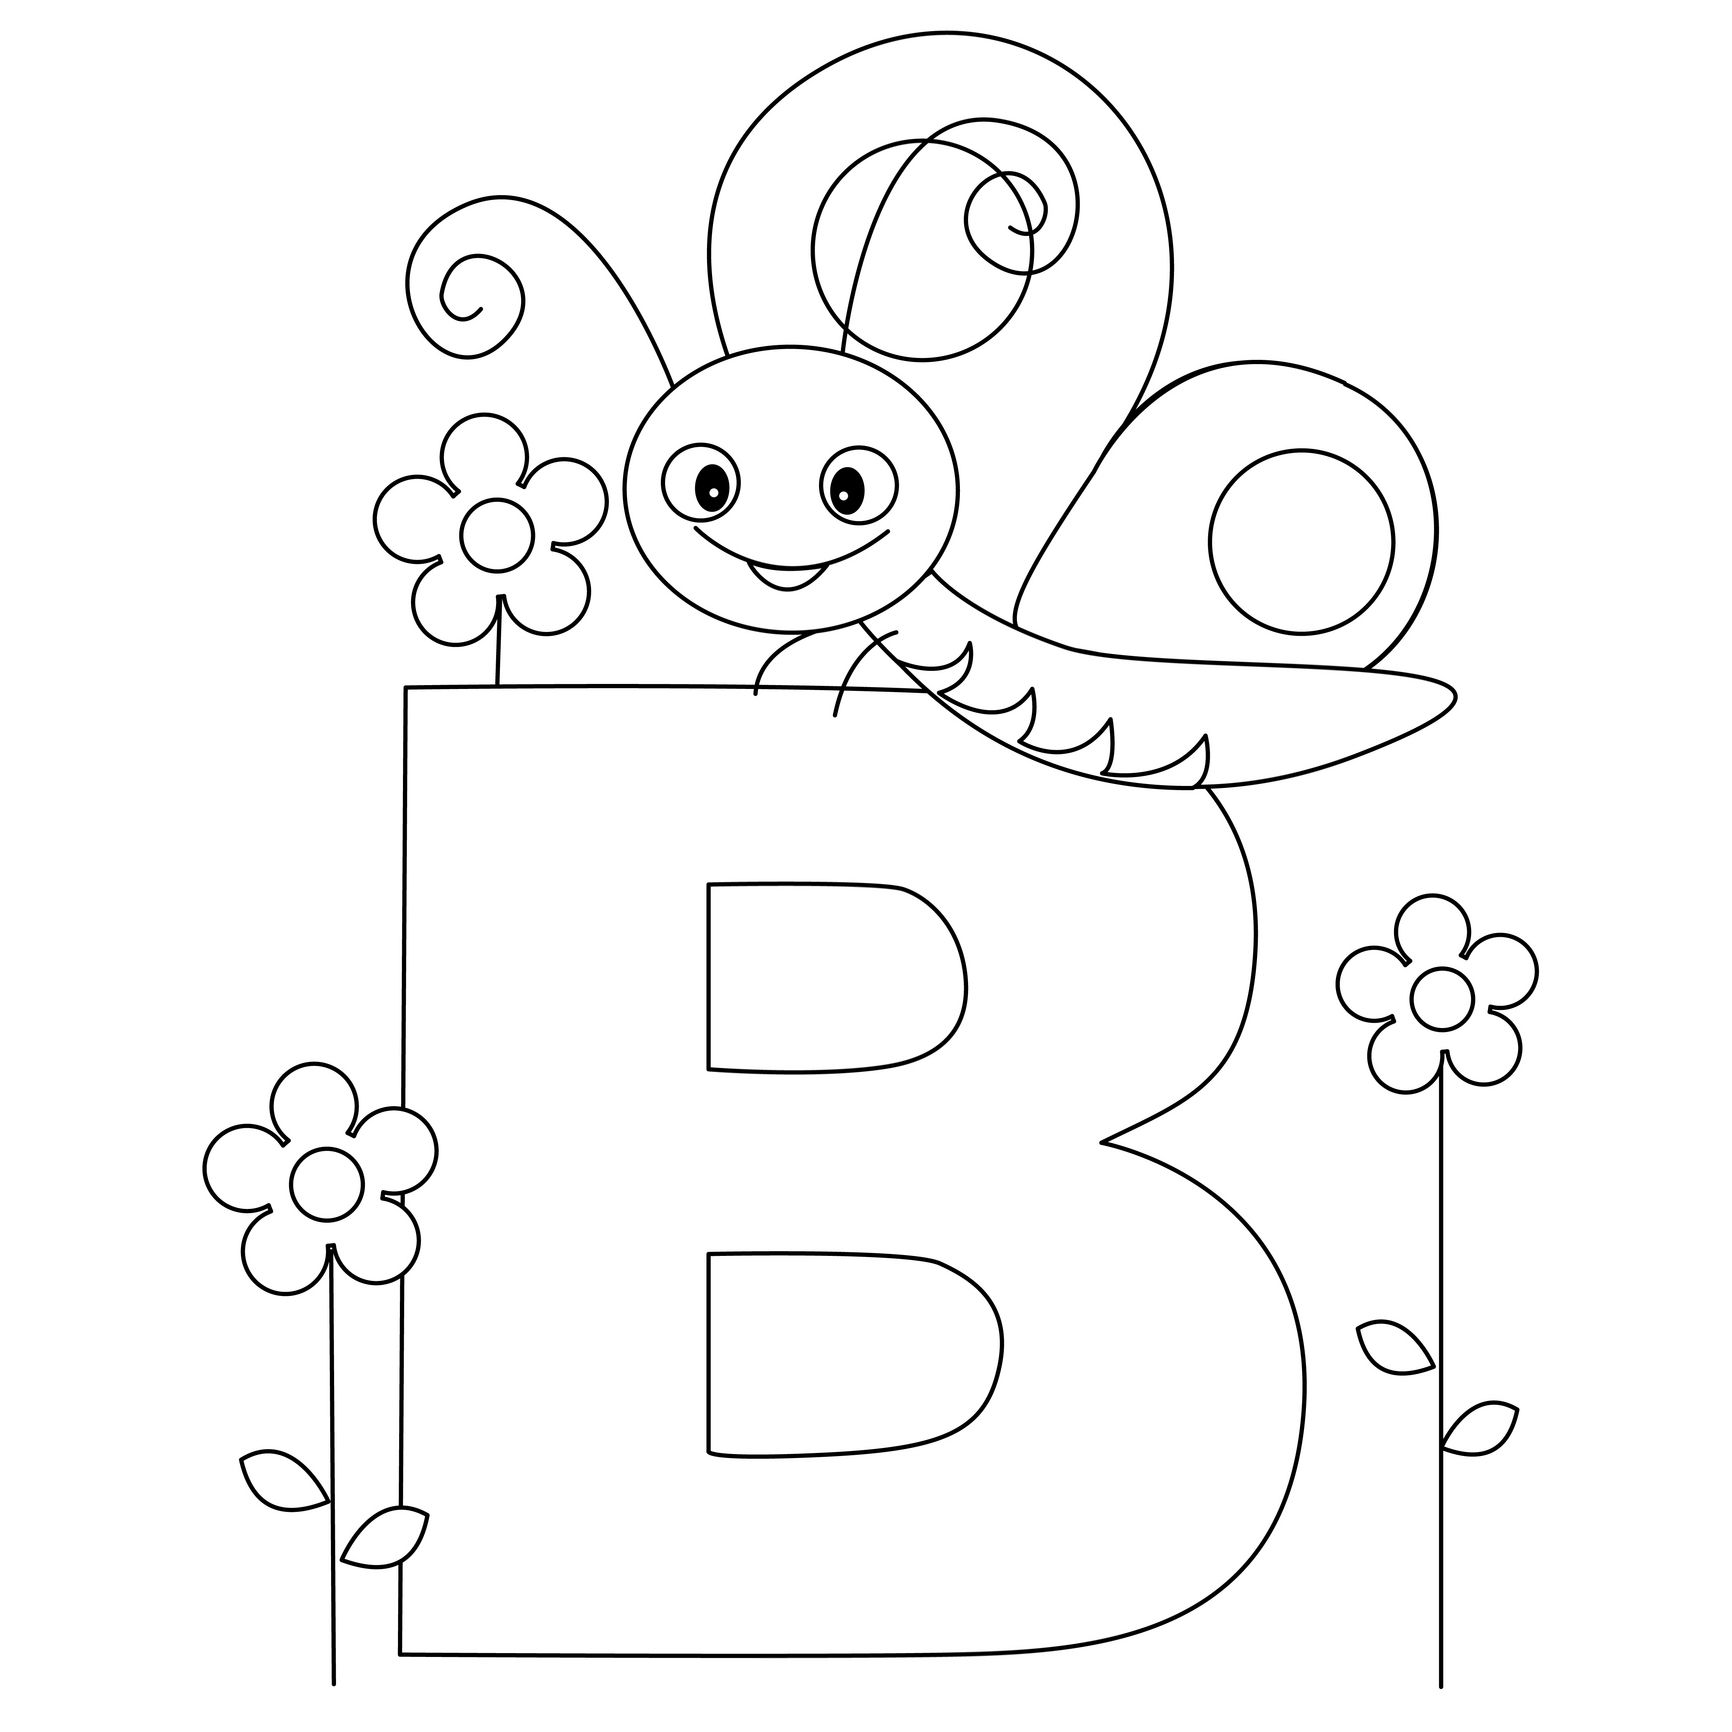 Animal Alphabet Letter B Is For Butterfly Heres A Simple Coloring PagesAnimal